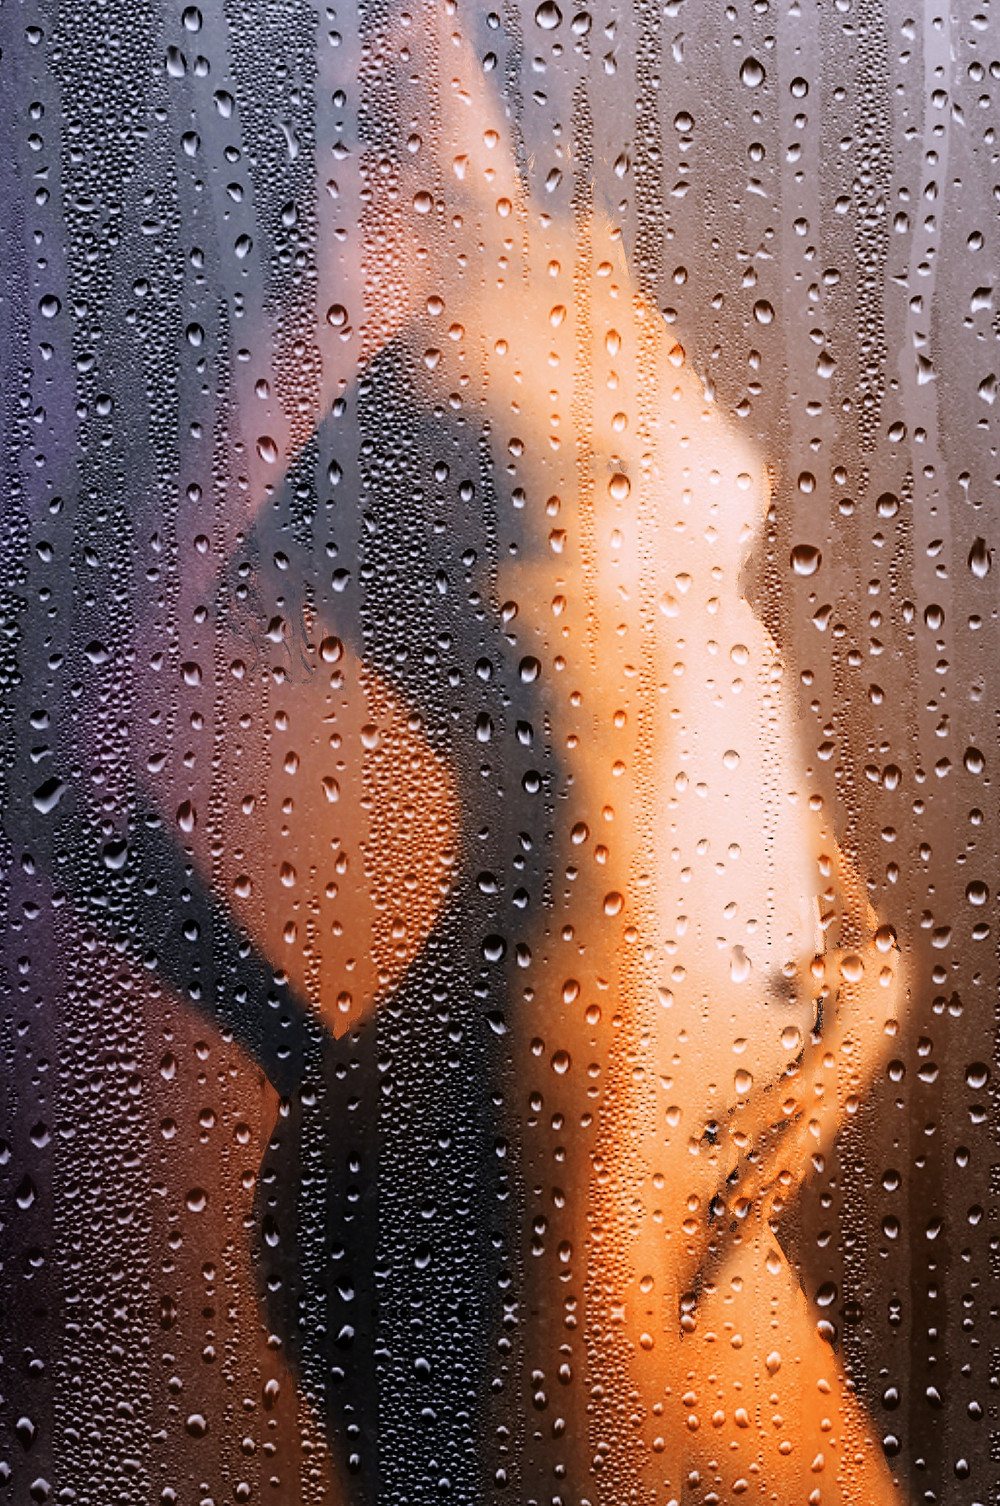 A woman masturbating in the shower